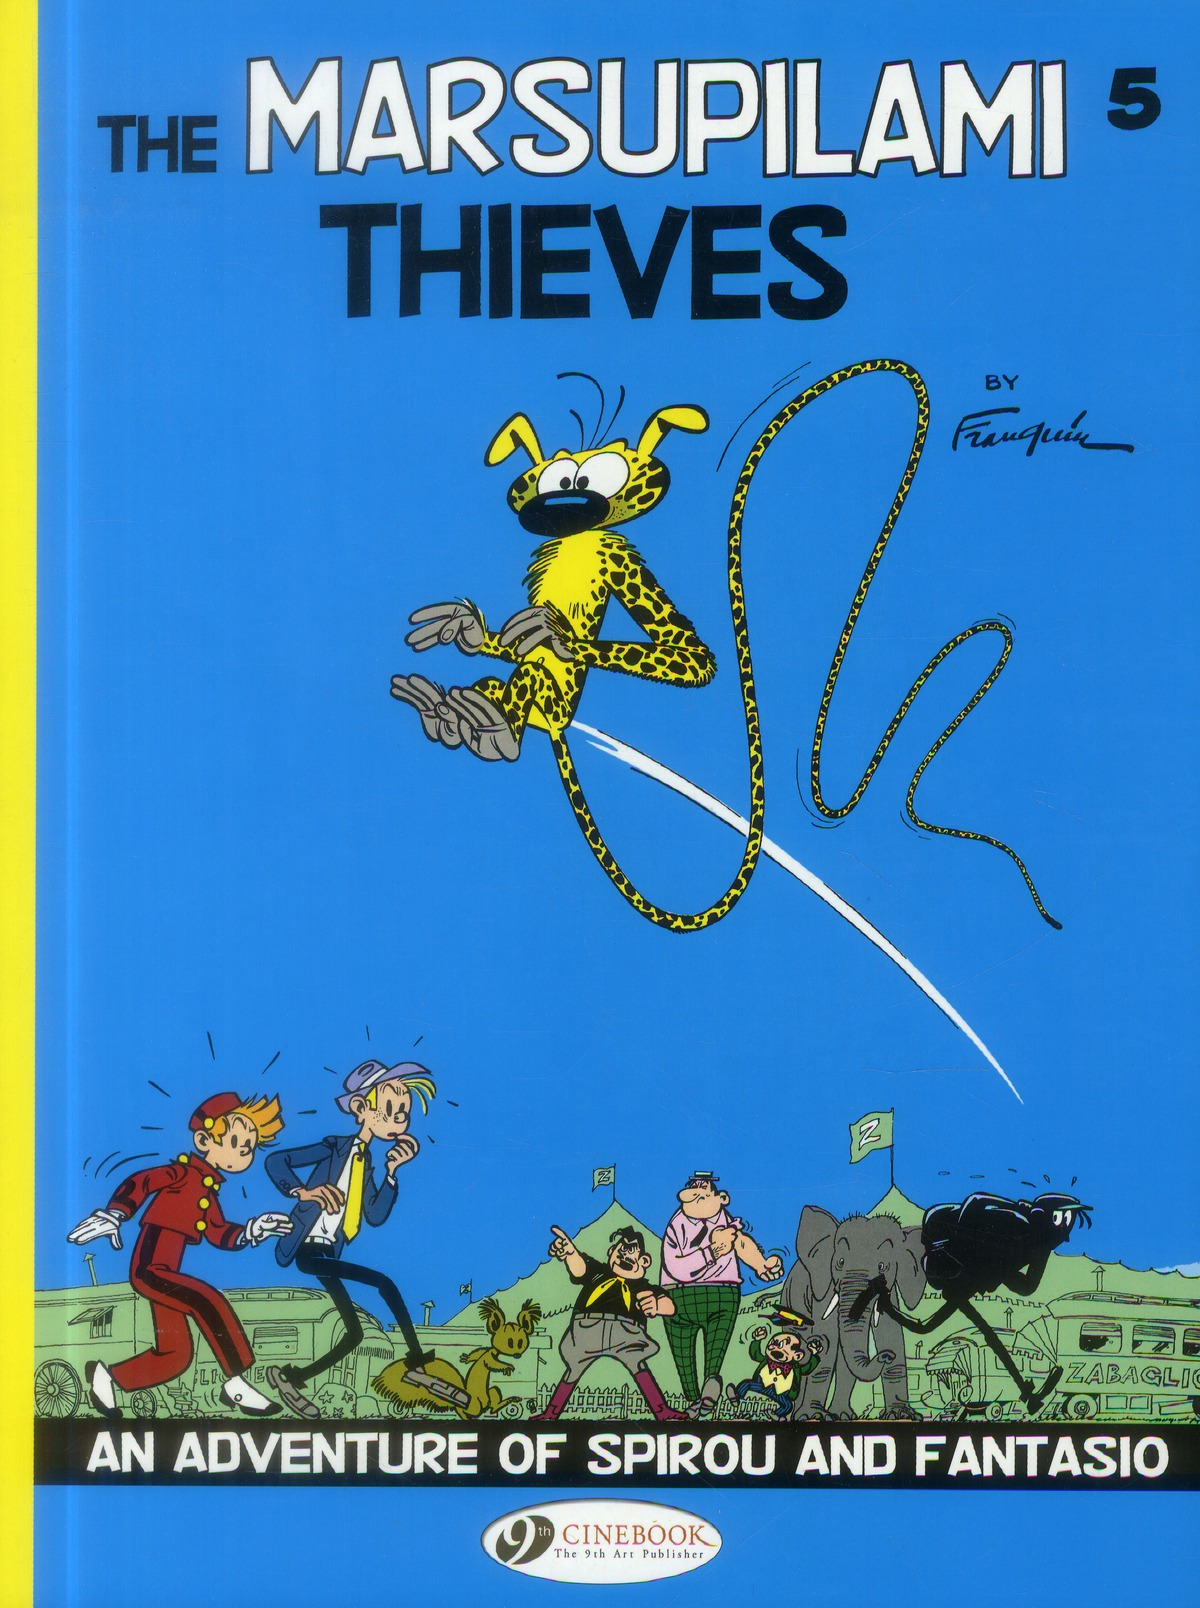 SPIROU & FANTASIO - TOME 5 THE MARSUPILAMI THIEVES